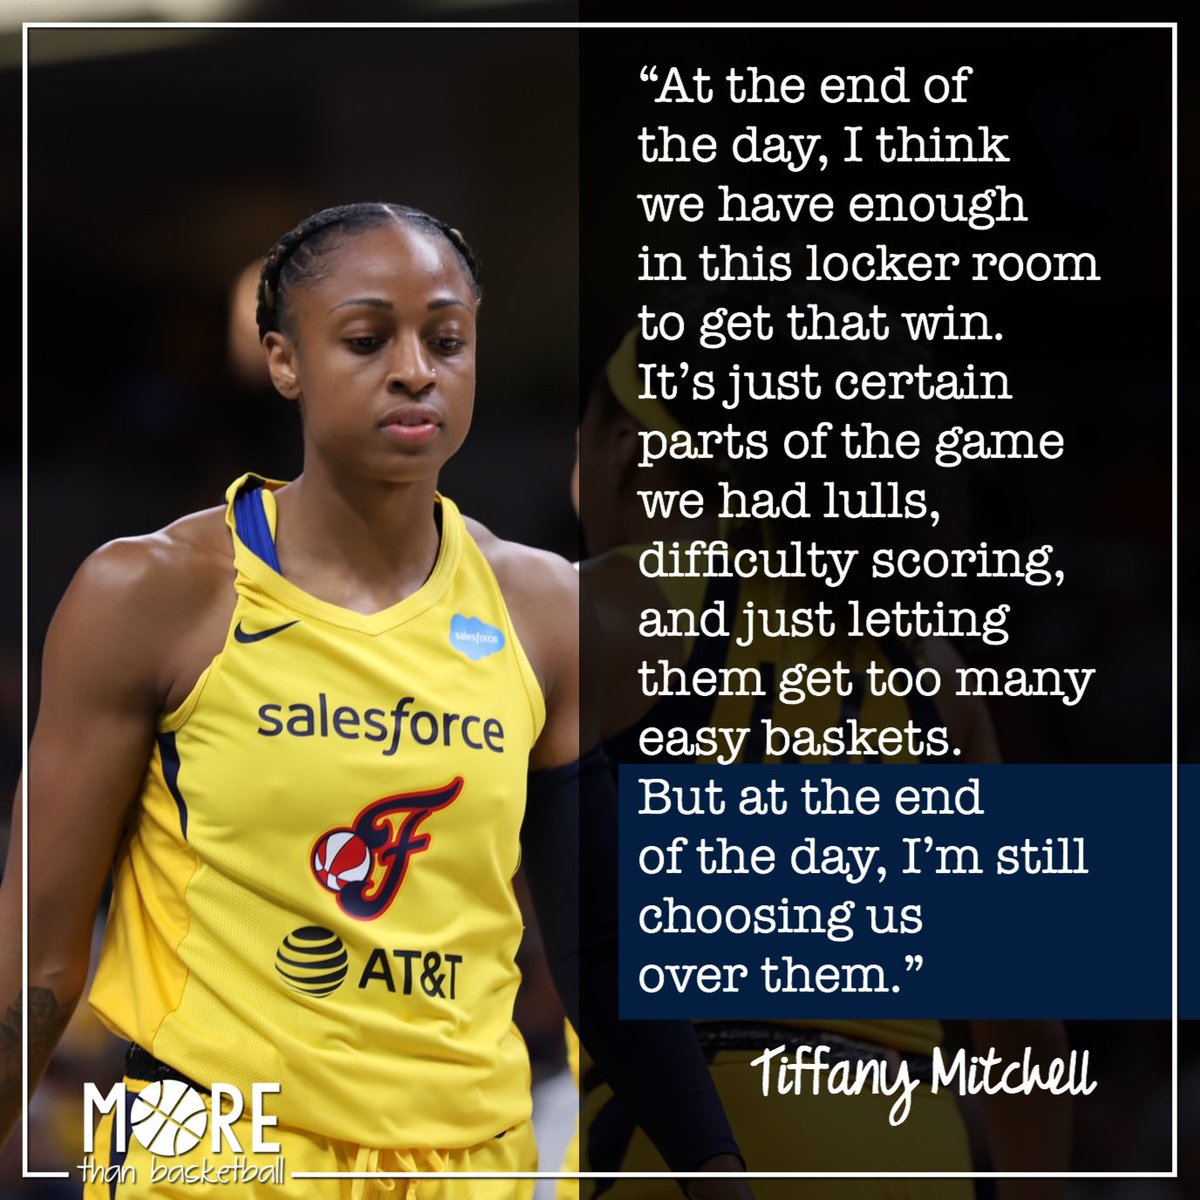 The @indianafever take on the @dallaswings tonight at 8 Eastern. (📺:CBS Sports Network) Despite 2 tough losses this week, @TiffMitch25 believes in her team's ability to win. . #wnba #indianafever #fever20 #allforlove